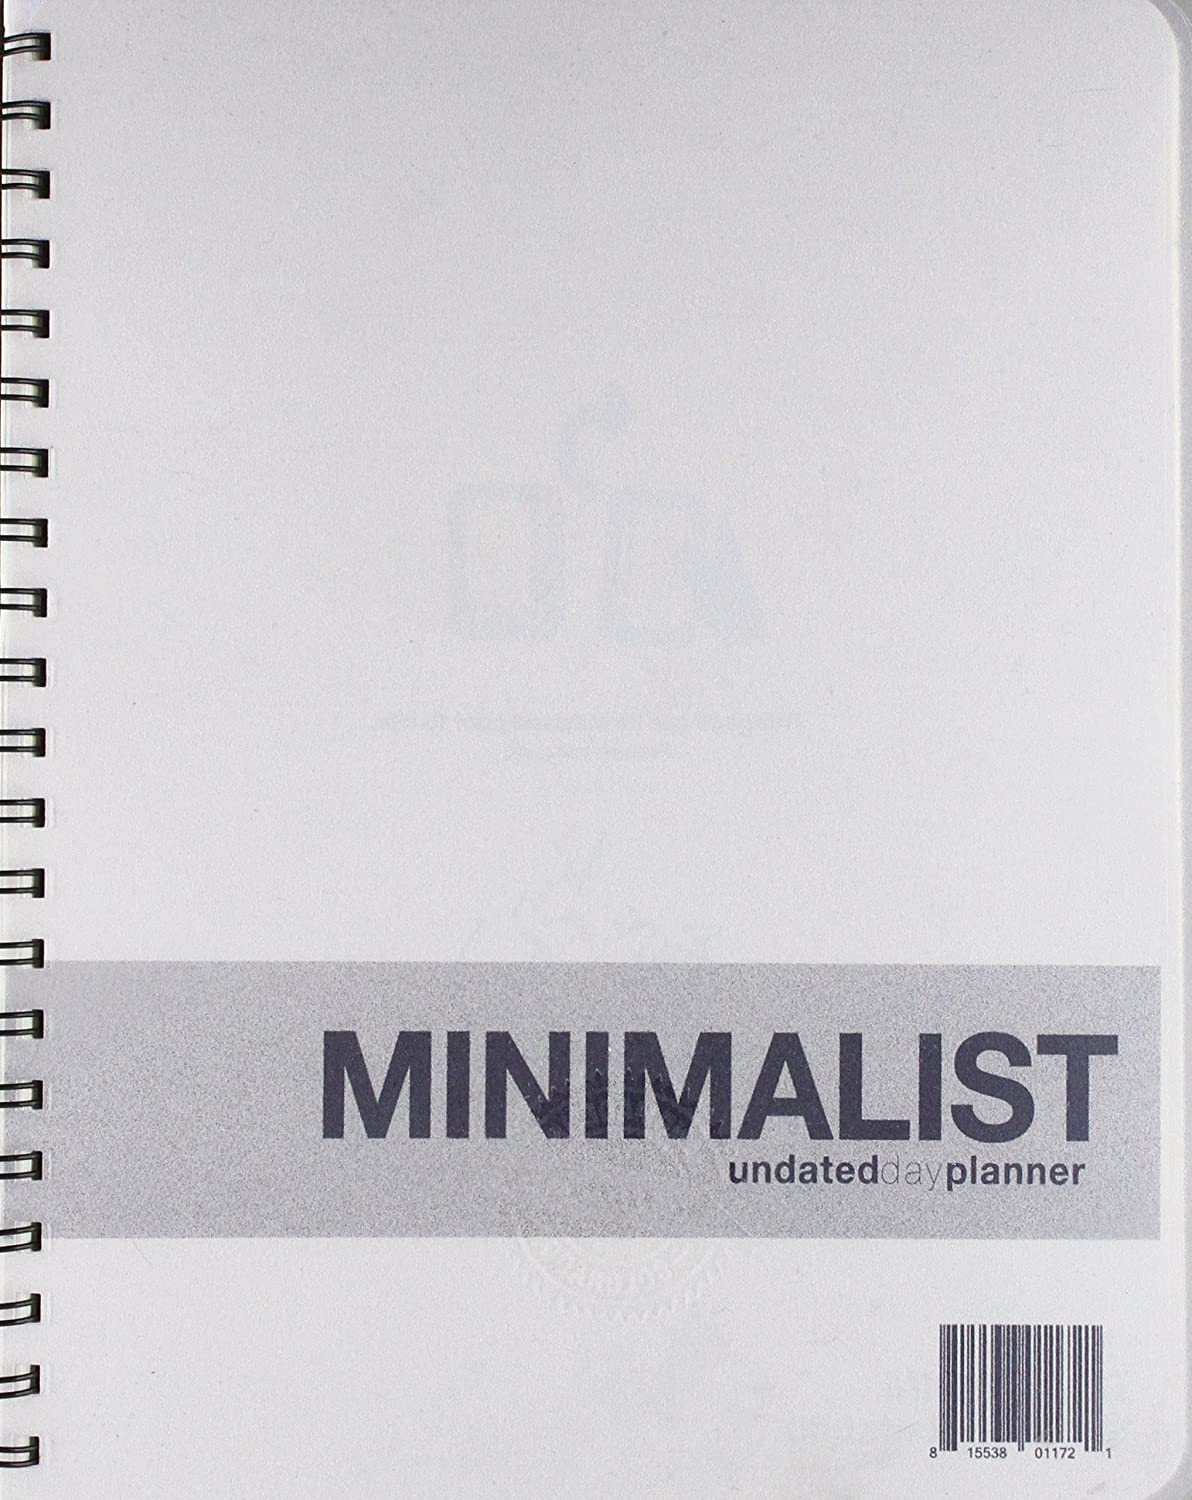 Undated Minimalist Day Planner - A planner without all the bells and whistles - Functional tool to manage your time Action Publishing Inc.